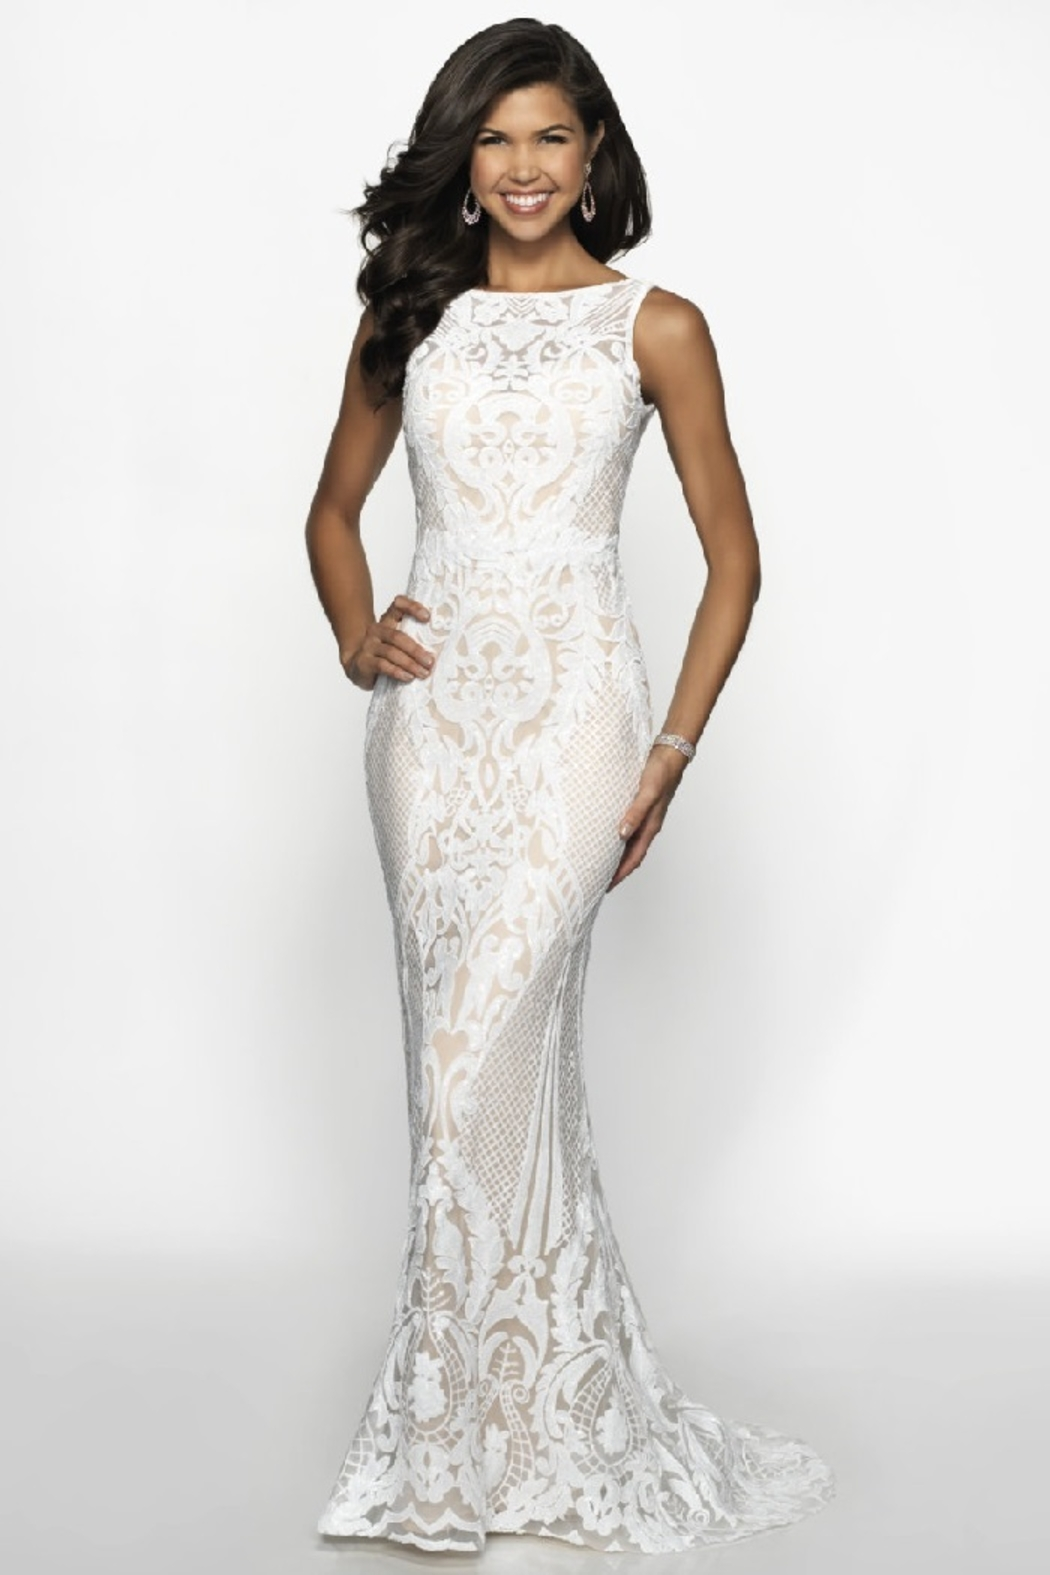 Flair New York Off White & Nude Sequin Fit & Flare Bridal Gown - Main Image